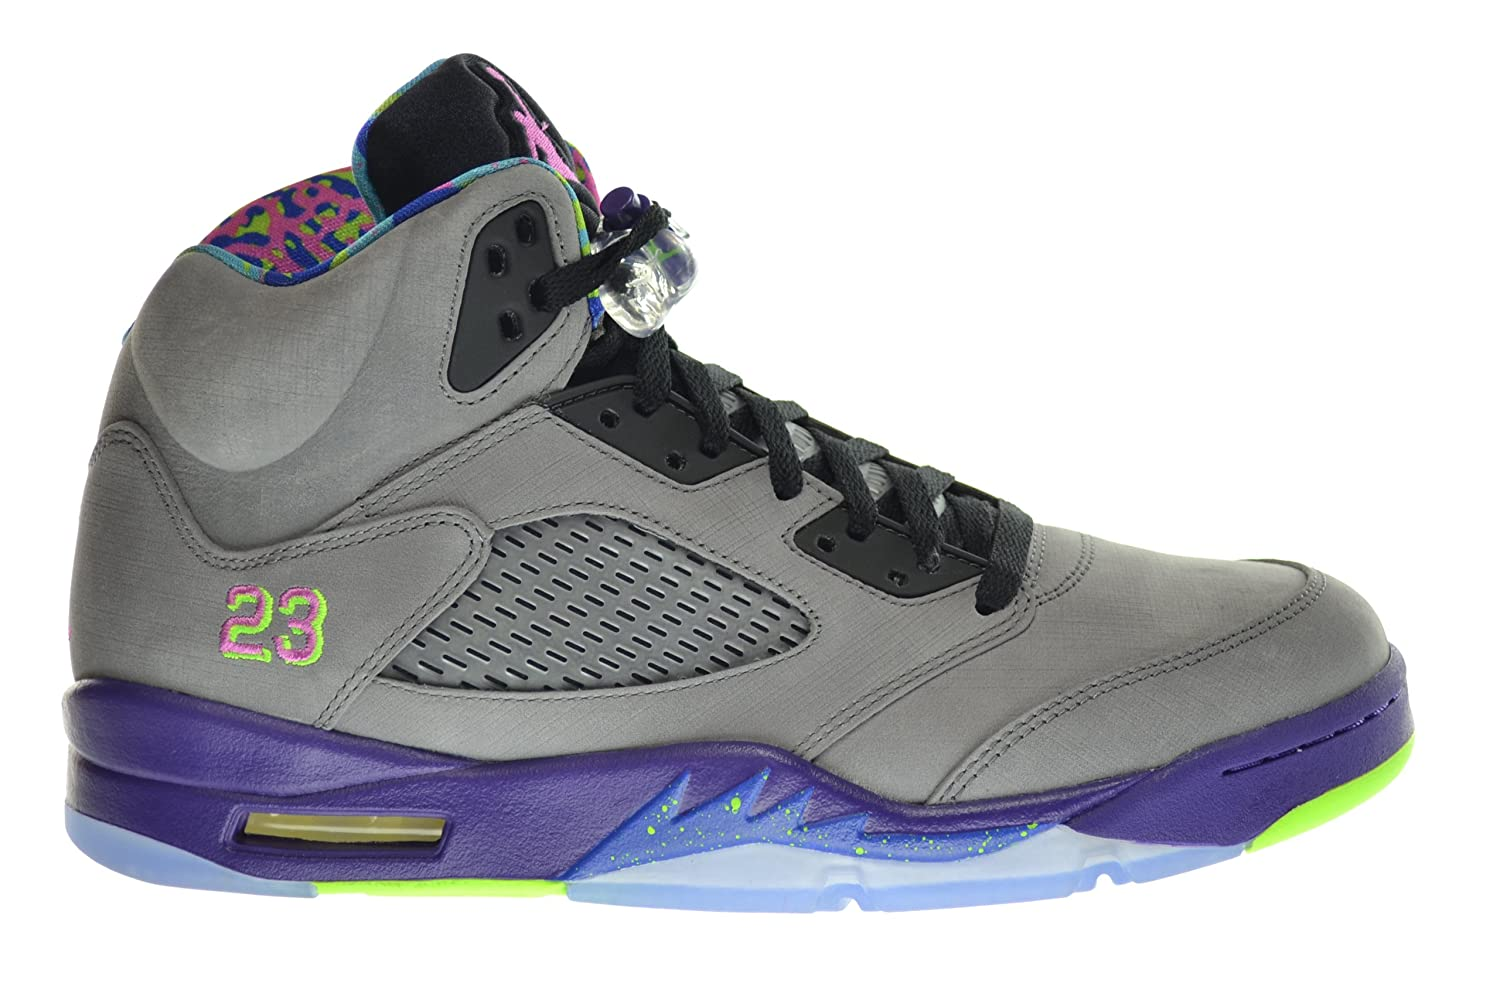 buy popular a774f d4c5a Jordan Air 5 Retro Bel Air Fresh Prince Men's Shoes Cool Grey/Club  Pink-Court Purple-Game Royal 621958-090 (Size 10.5)